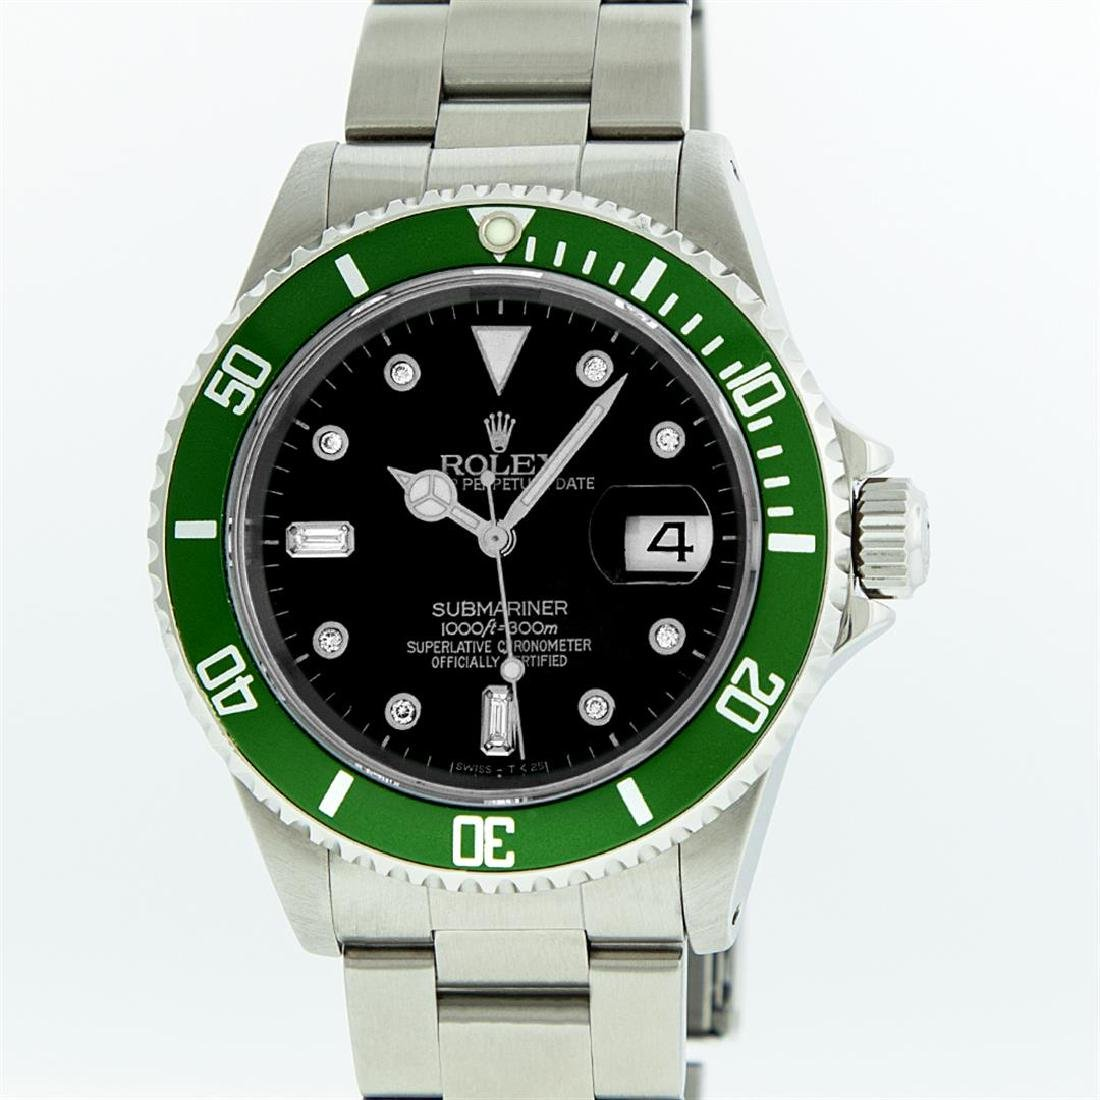 Rolex Stainless Steel Diamond Submariner Men's Watch